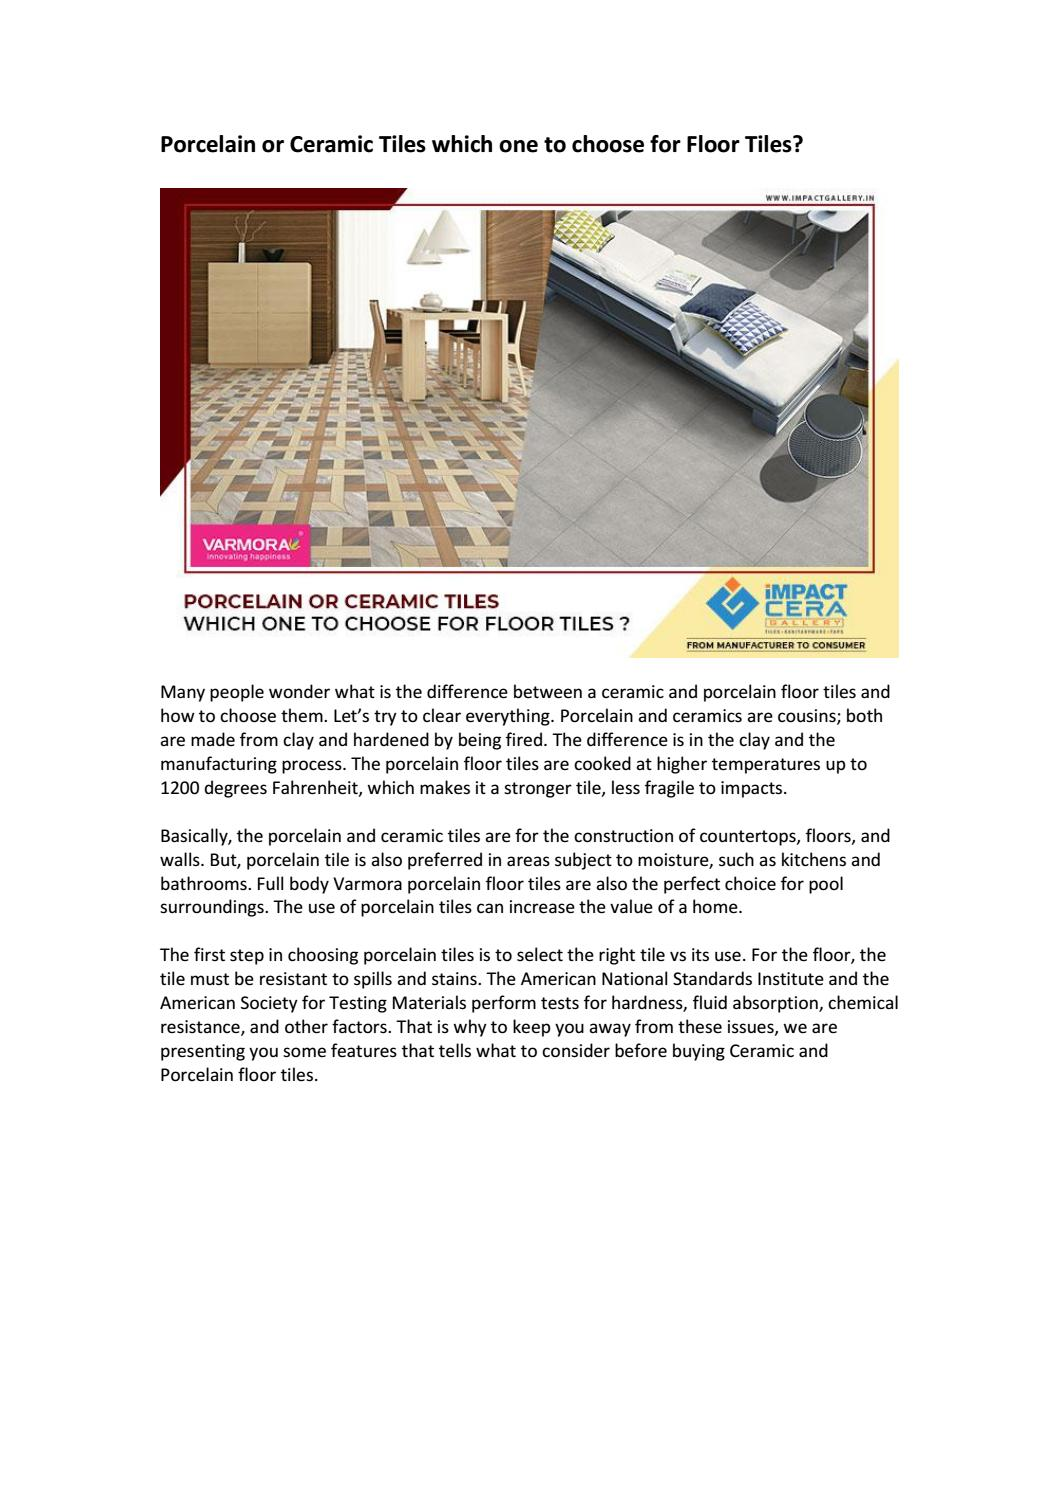 Porcelain Or Ceramic Tiles Which One To Choose For Floor Tiles By Impact Tile Gallery Issuu